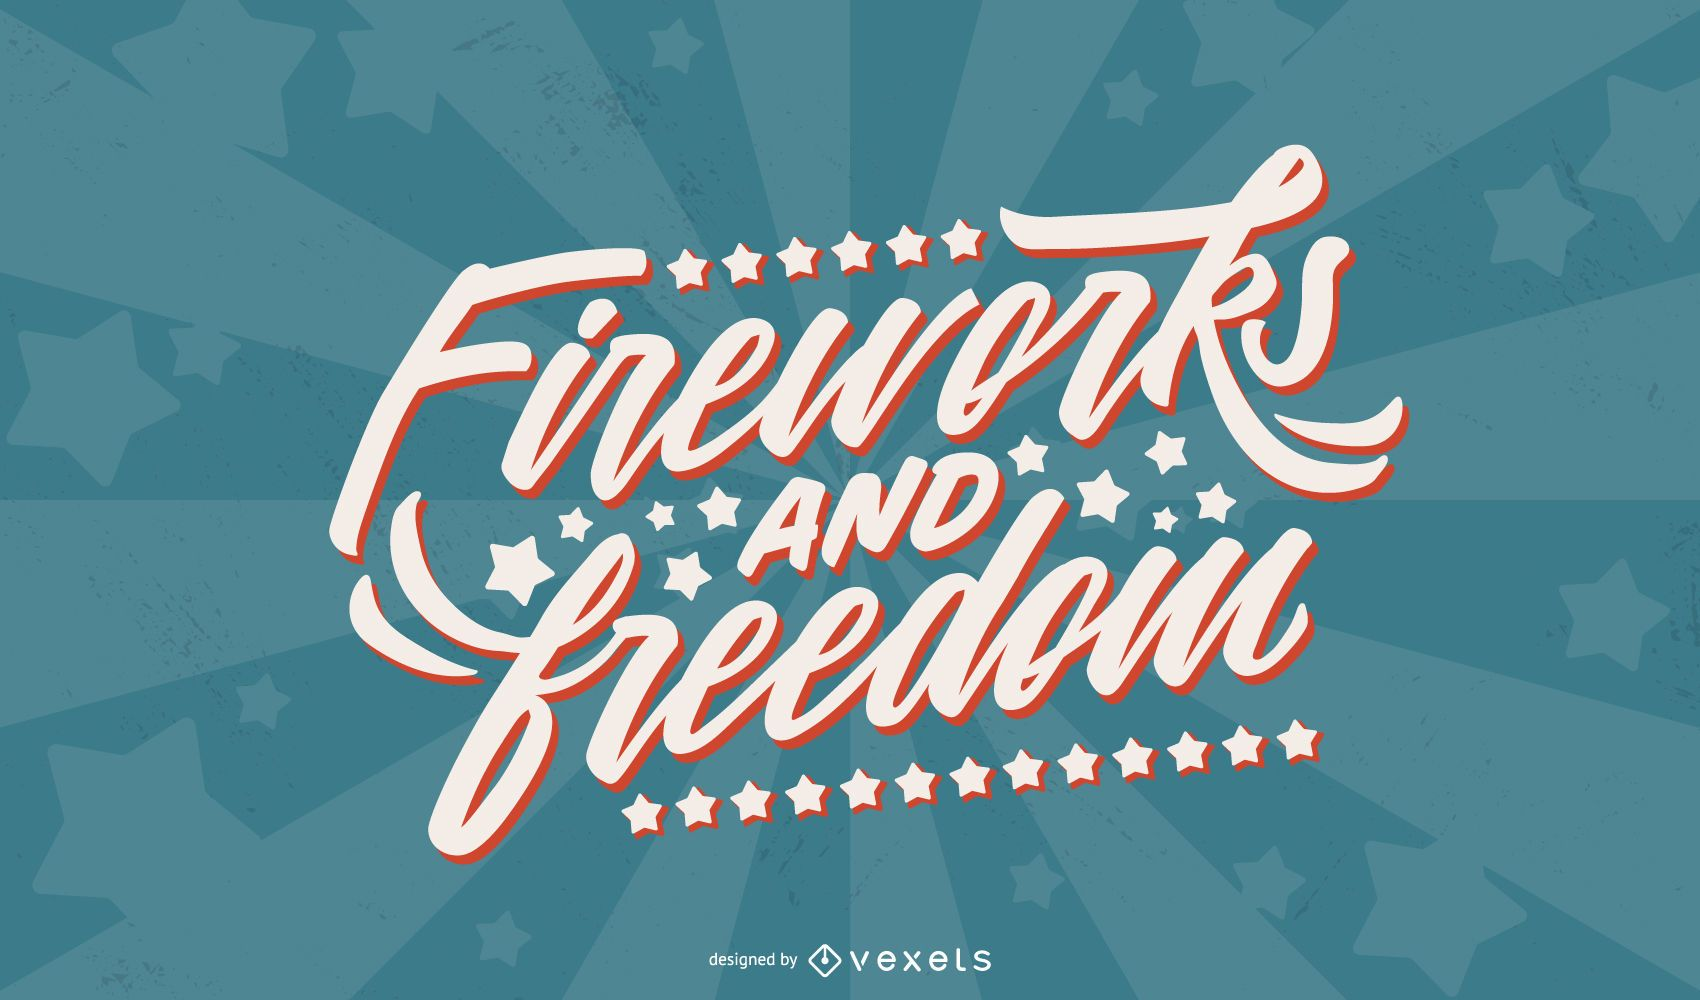 Fireworks and freedom lettering